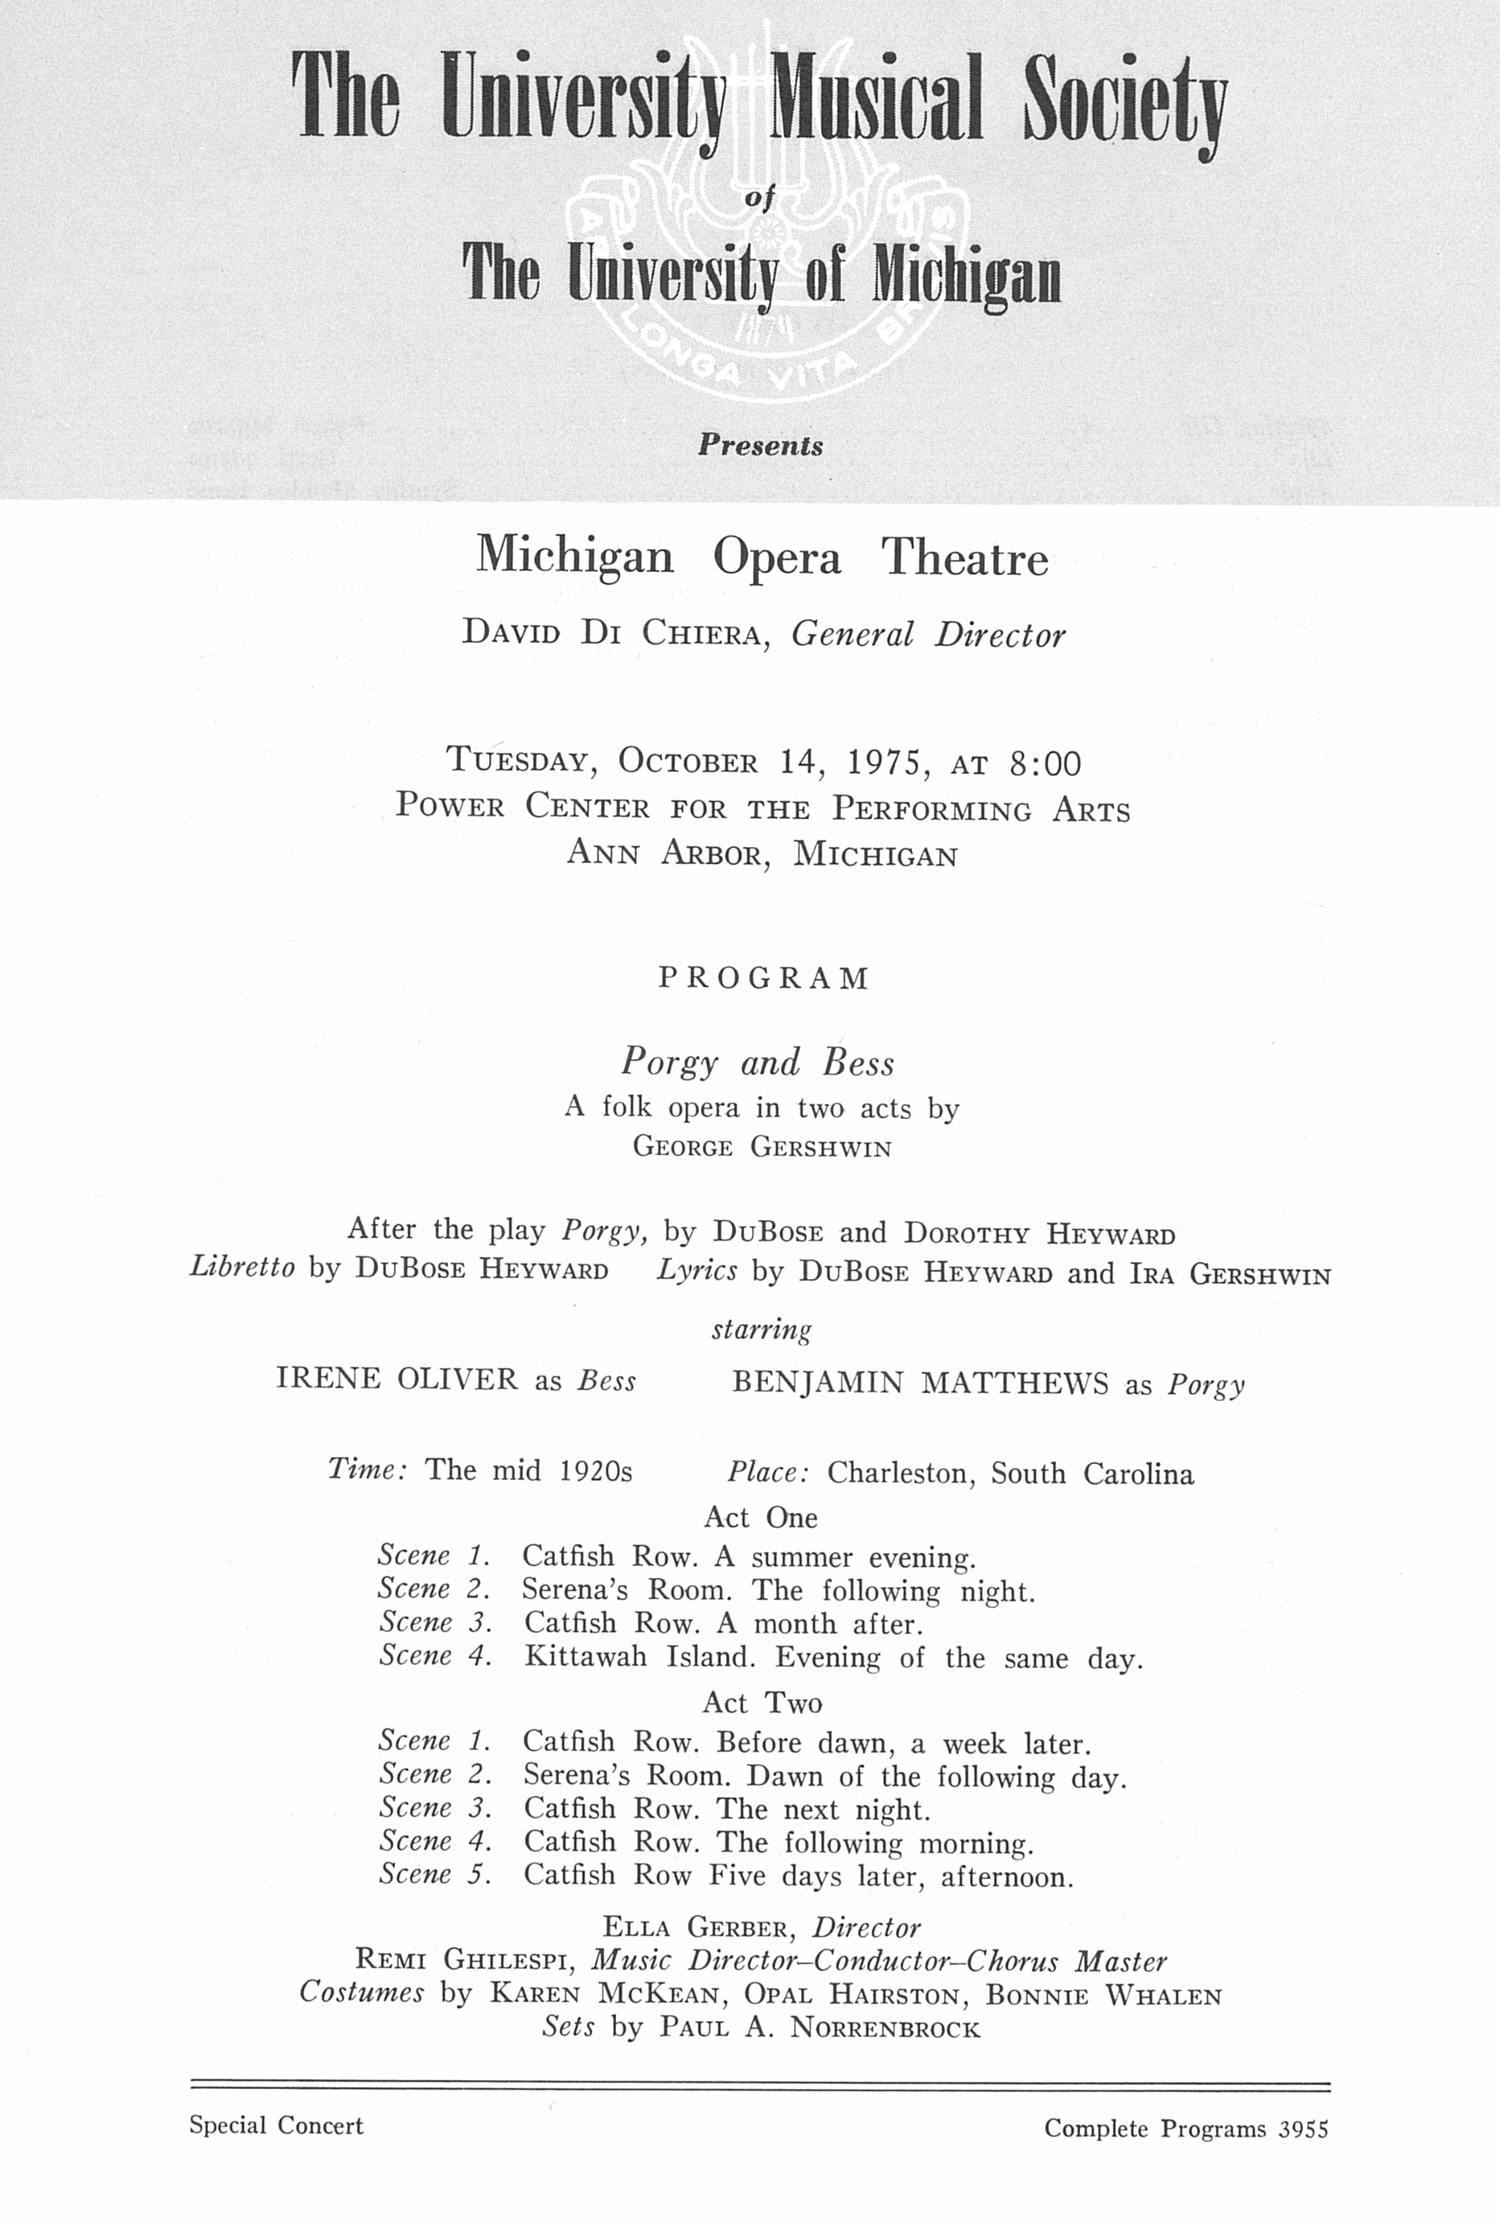 UMS Concert Program, October 14, 1975: Michigan Opera Theatre -- David Di Chiera image